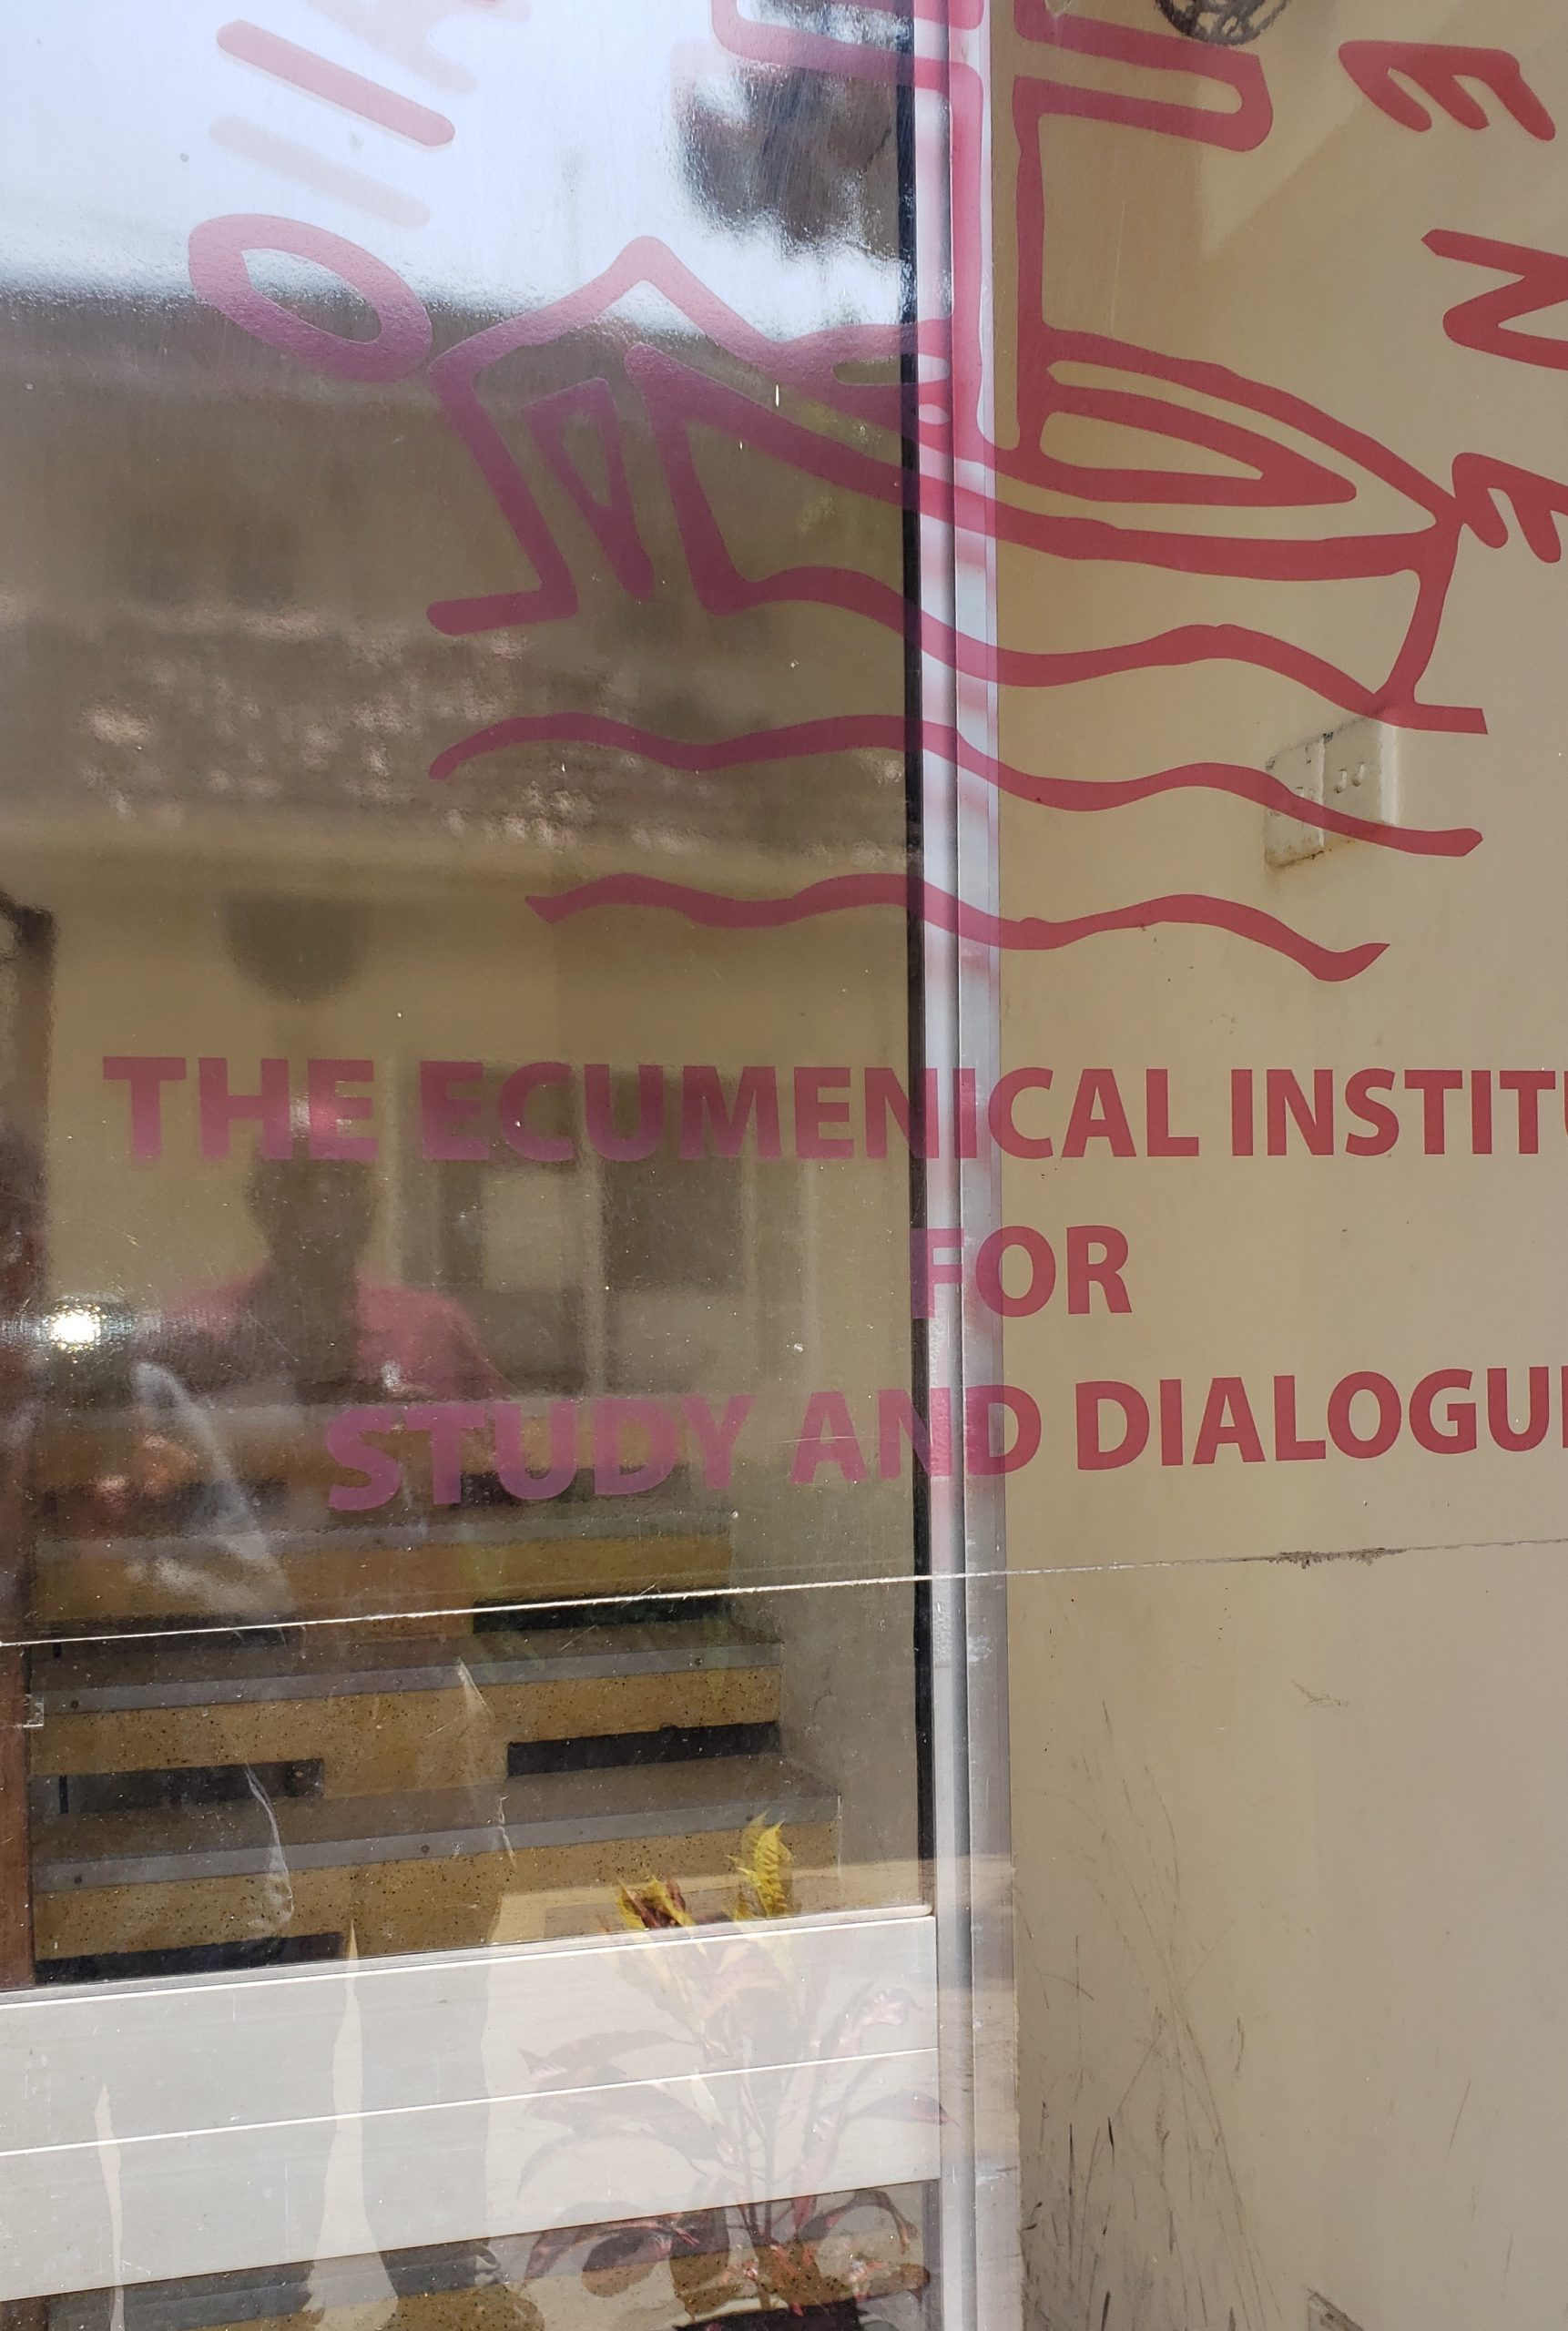 The_Ecumenica_Institute_for_Study_and_Dialogue.jpg